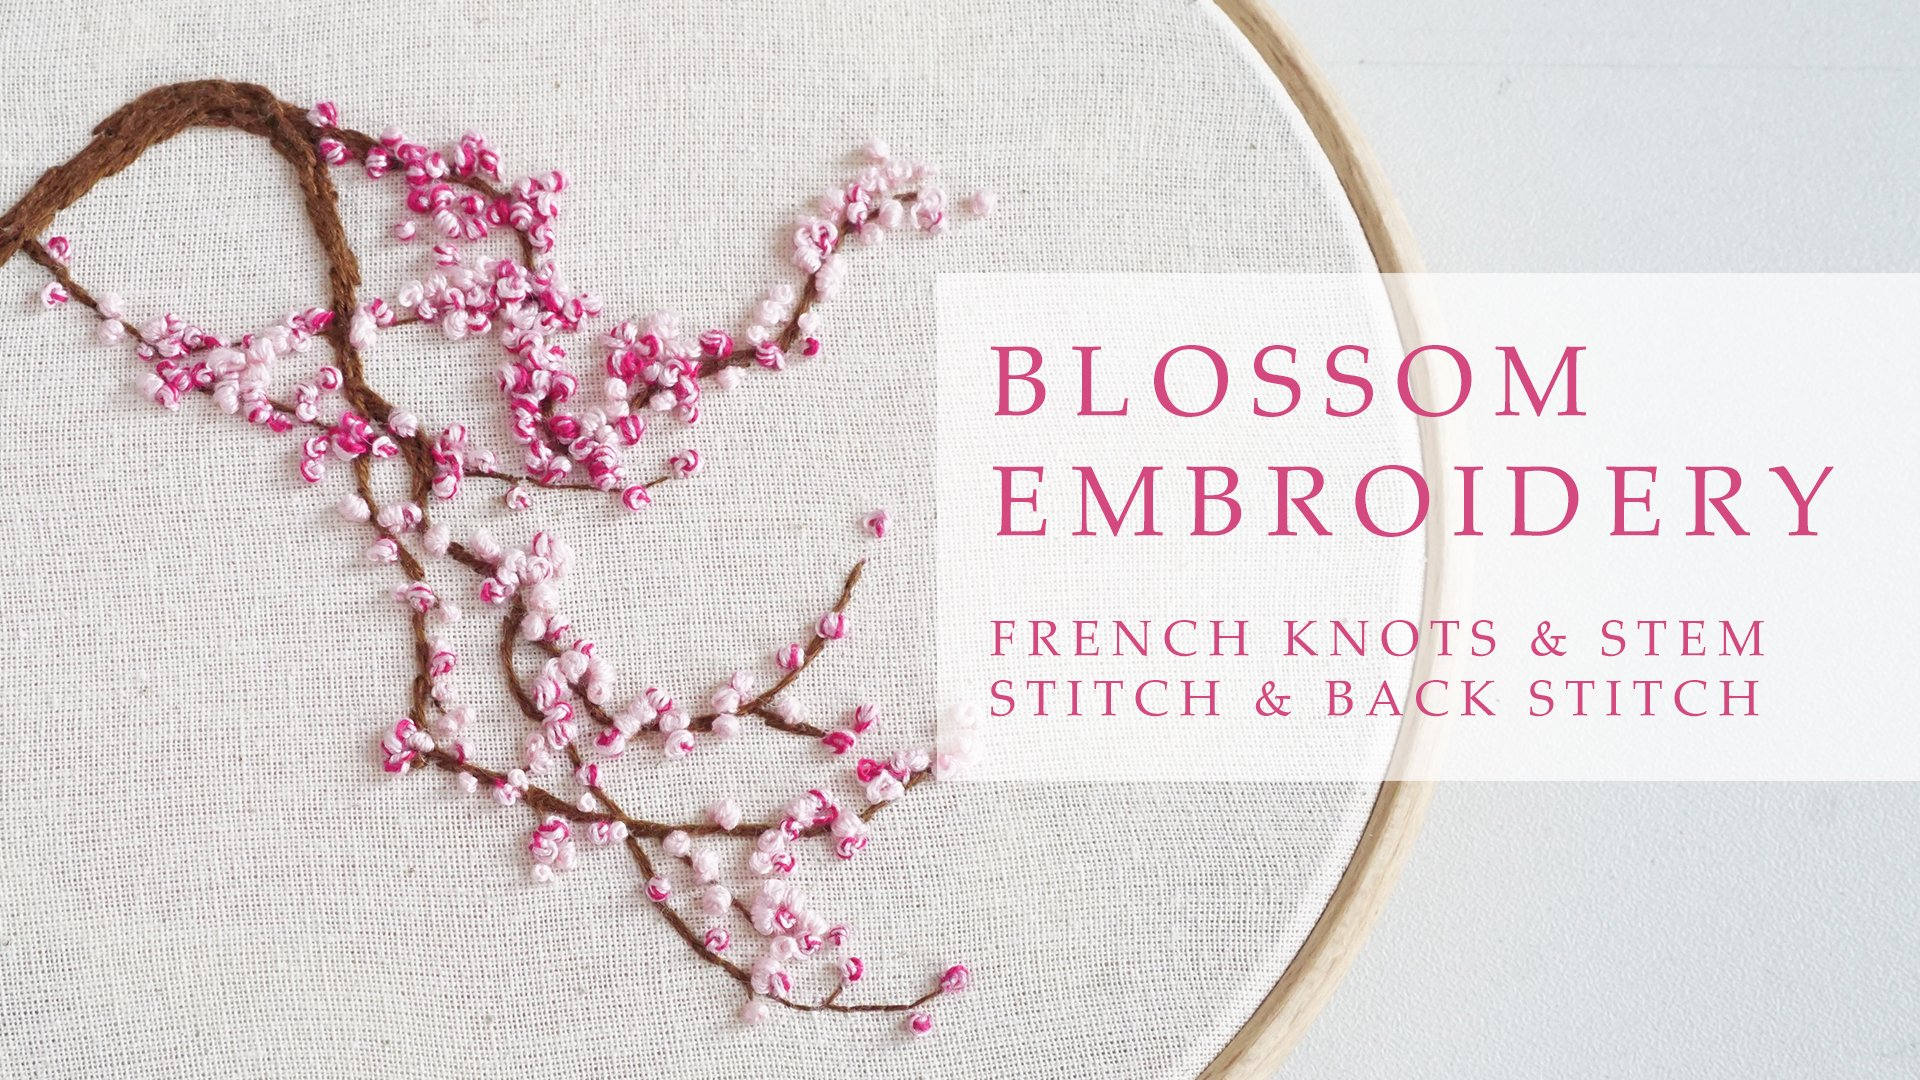 Blossom Embroidery Hoop Art Using The Back Stitch Stem Stitch French Knot Charlotte Kan Skillshare